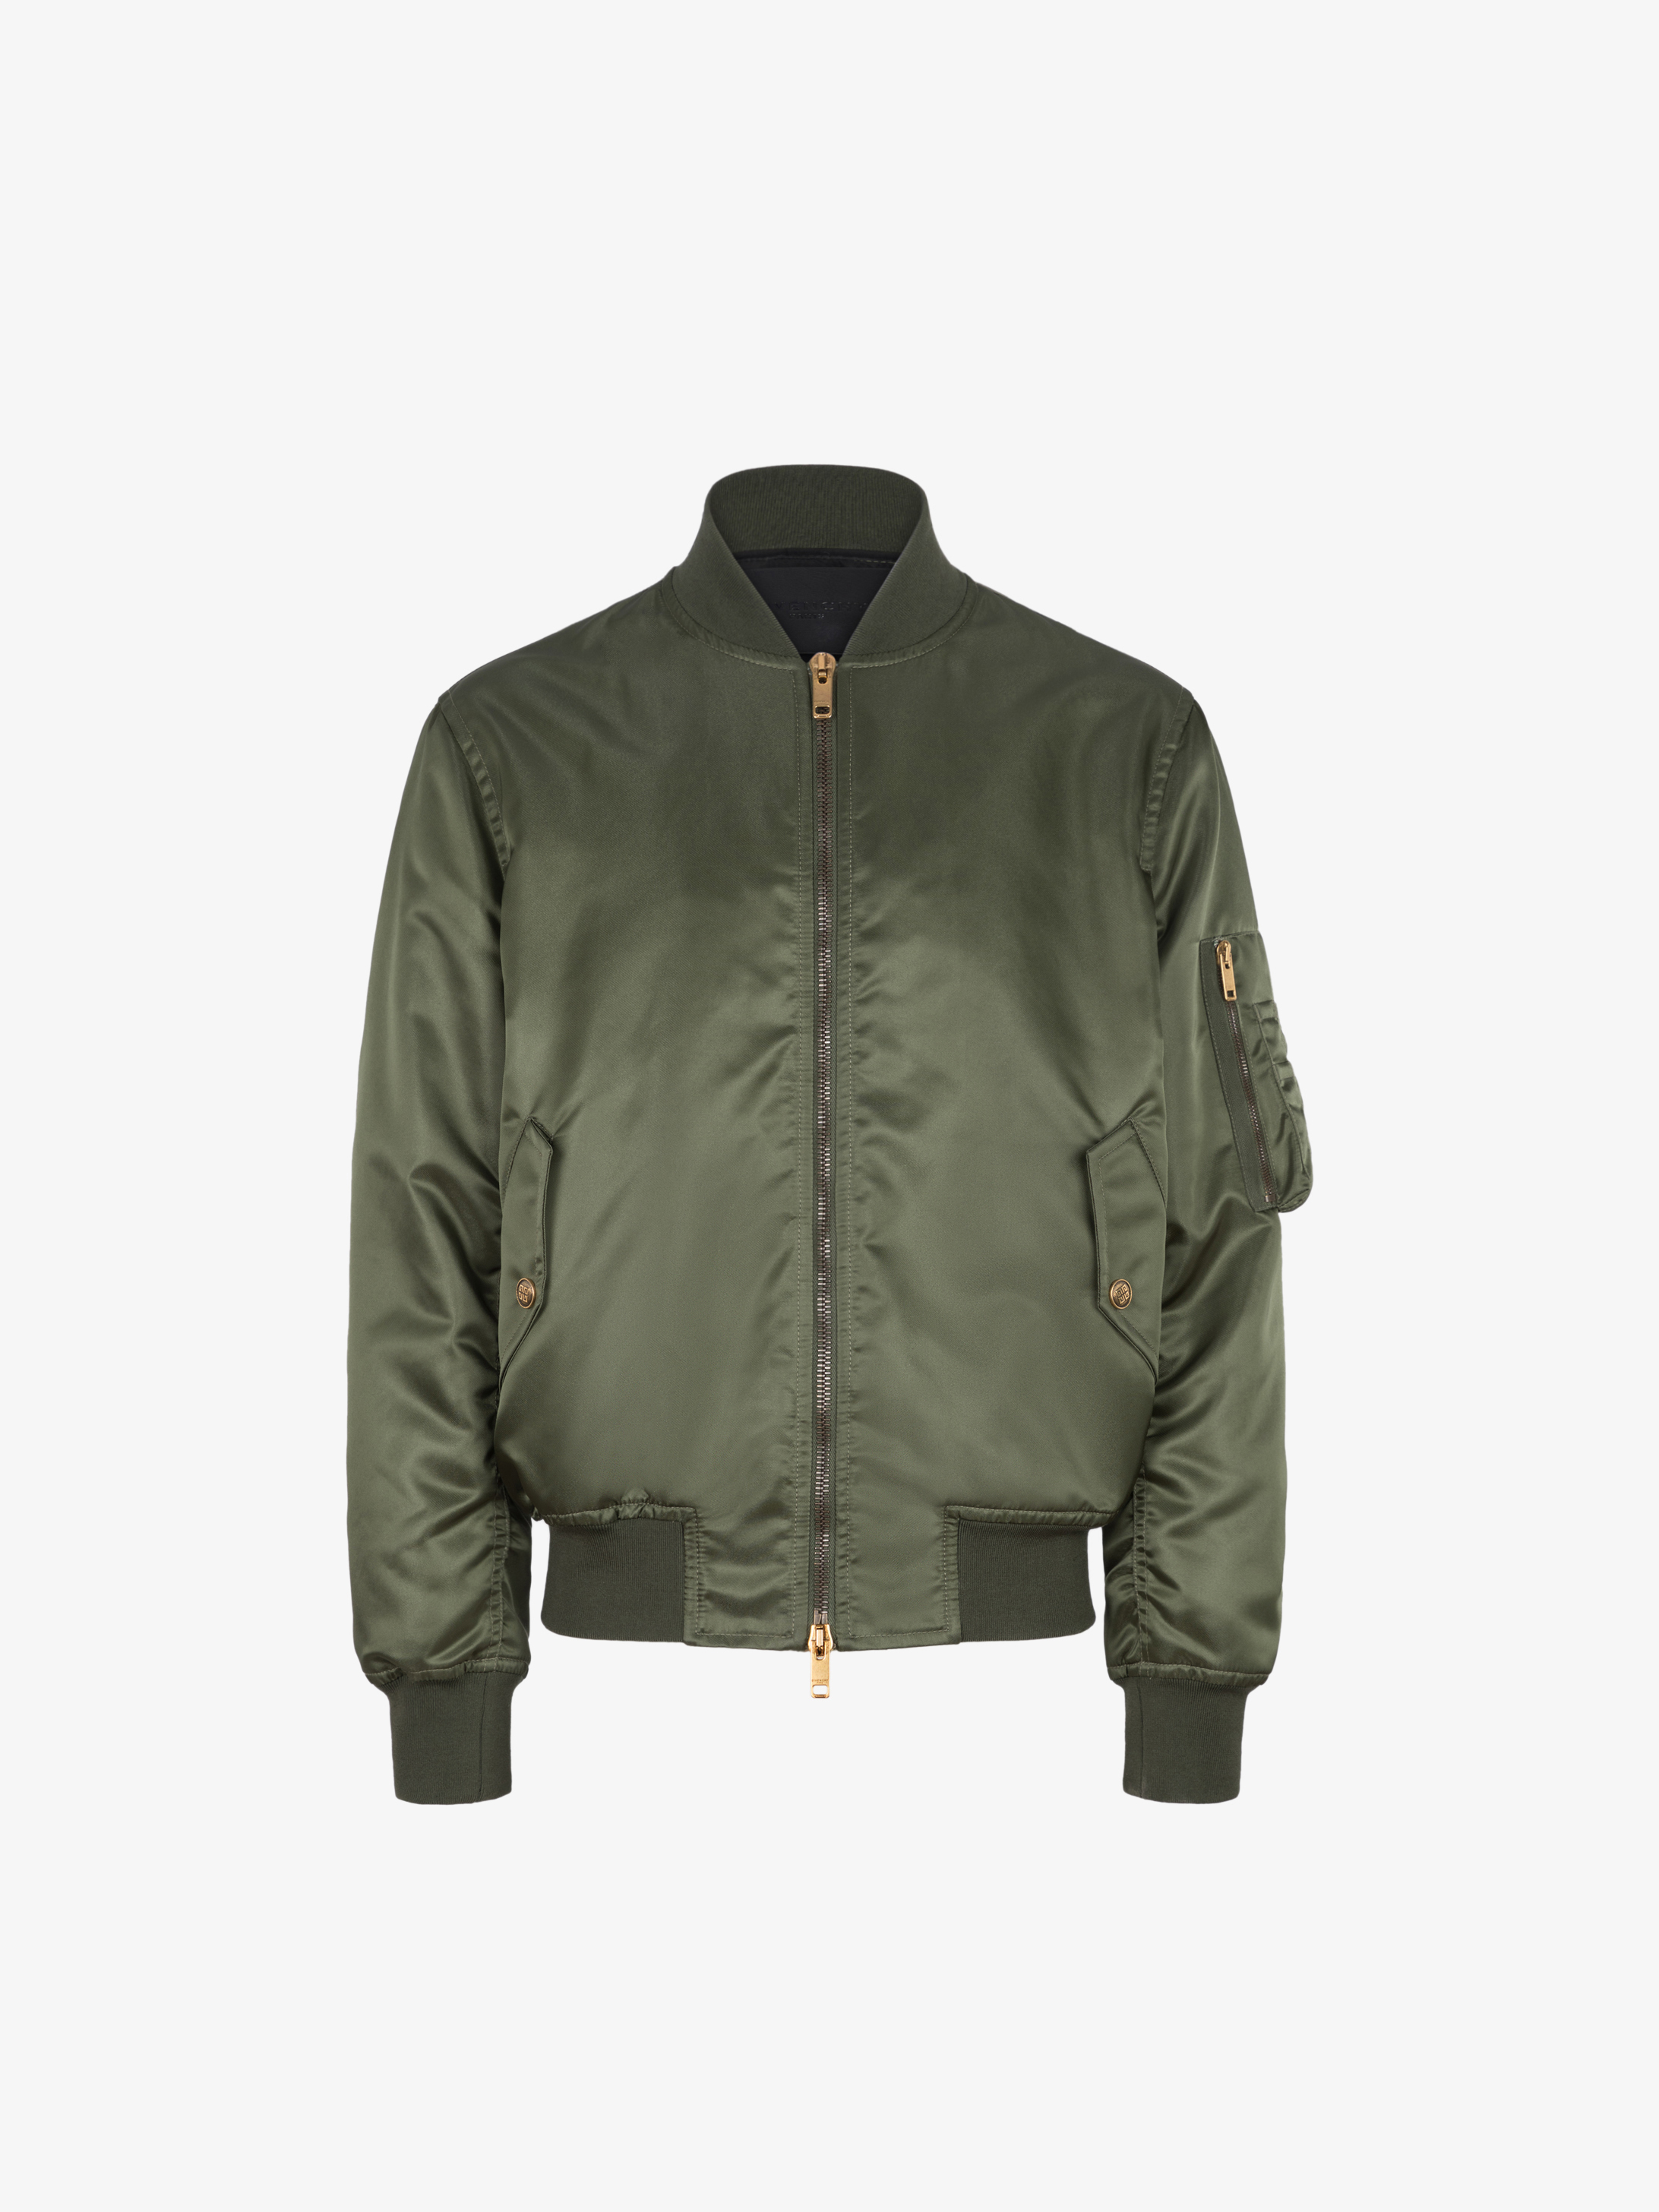 Bomber jacket in satin nylon with 4G buttons